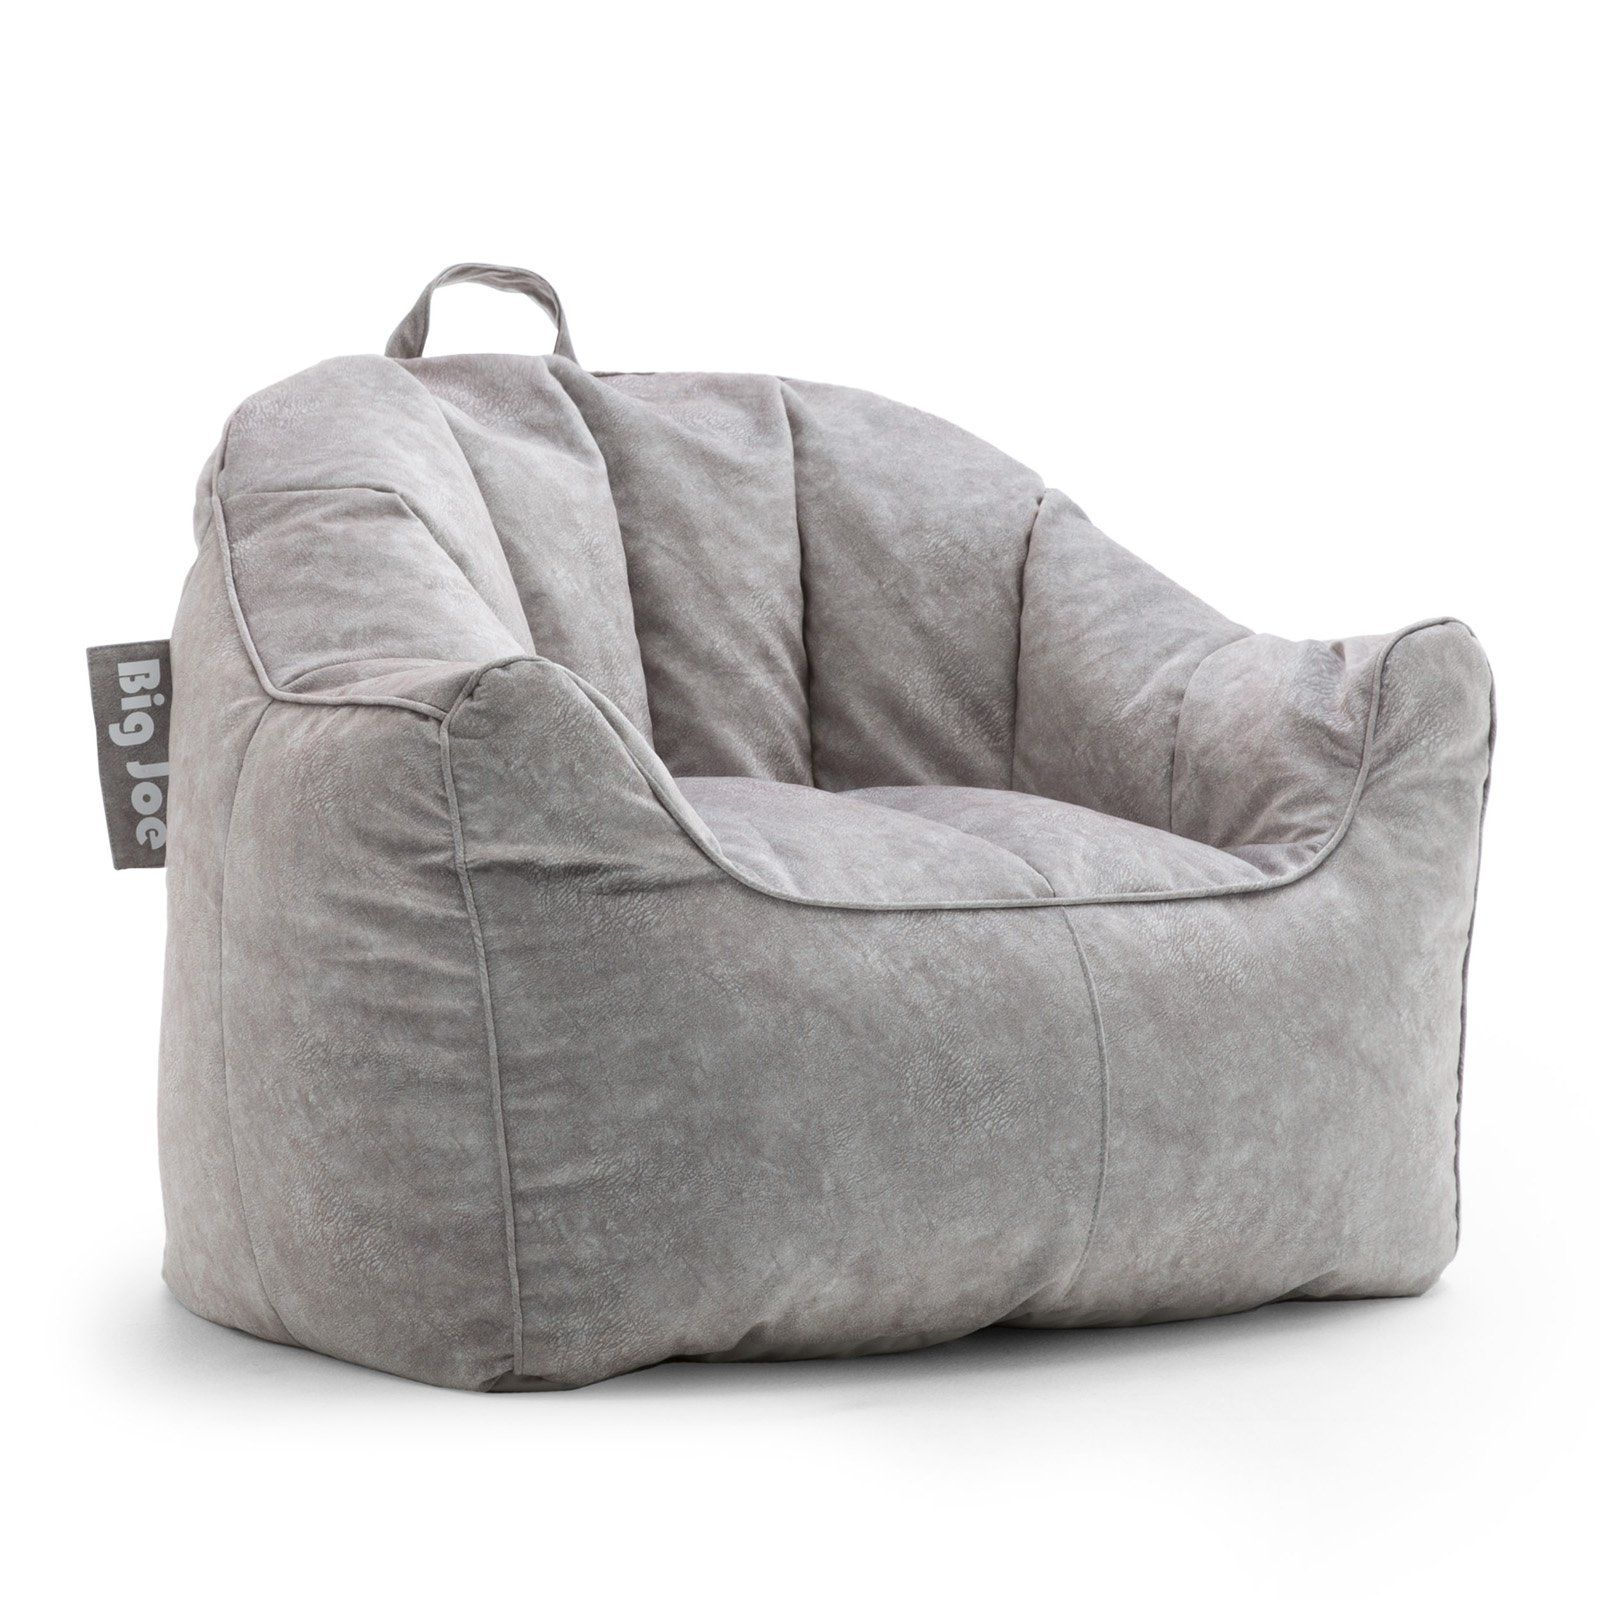 Groovy Big Joe Hug Bean Bag Chair Lunar Gray In 2019 Products Ocoug Best Dining Table And Chair Ideas Images Ocougorg